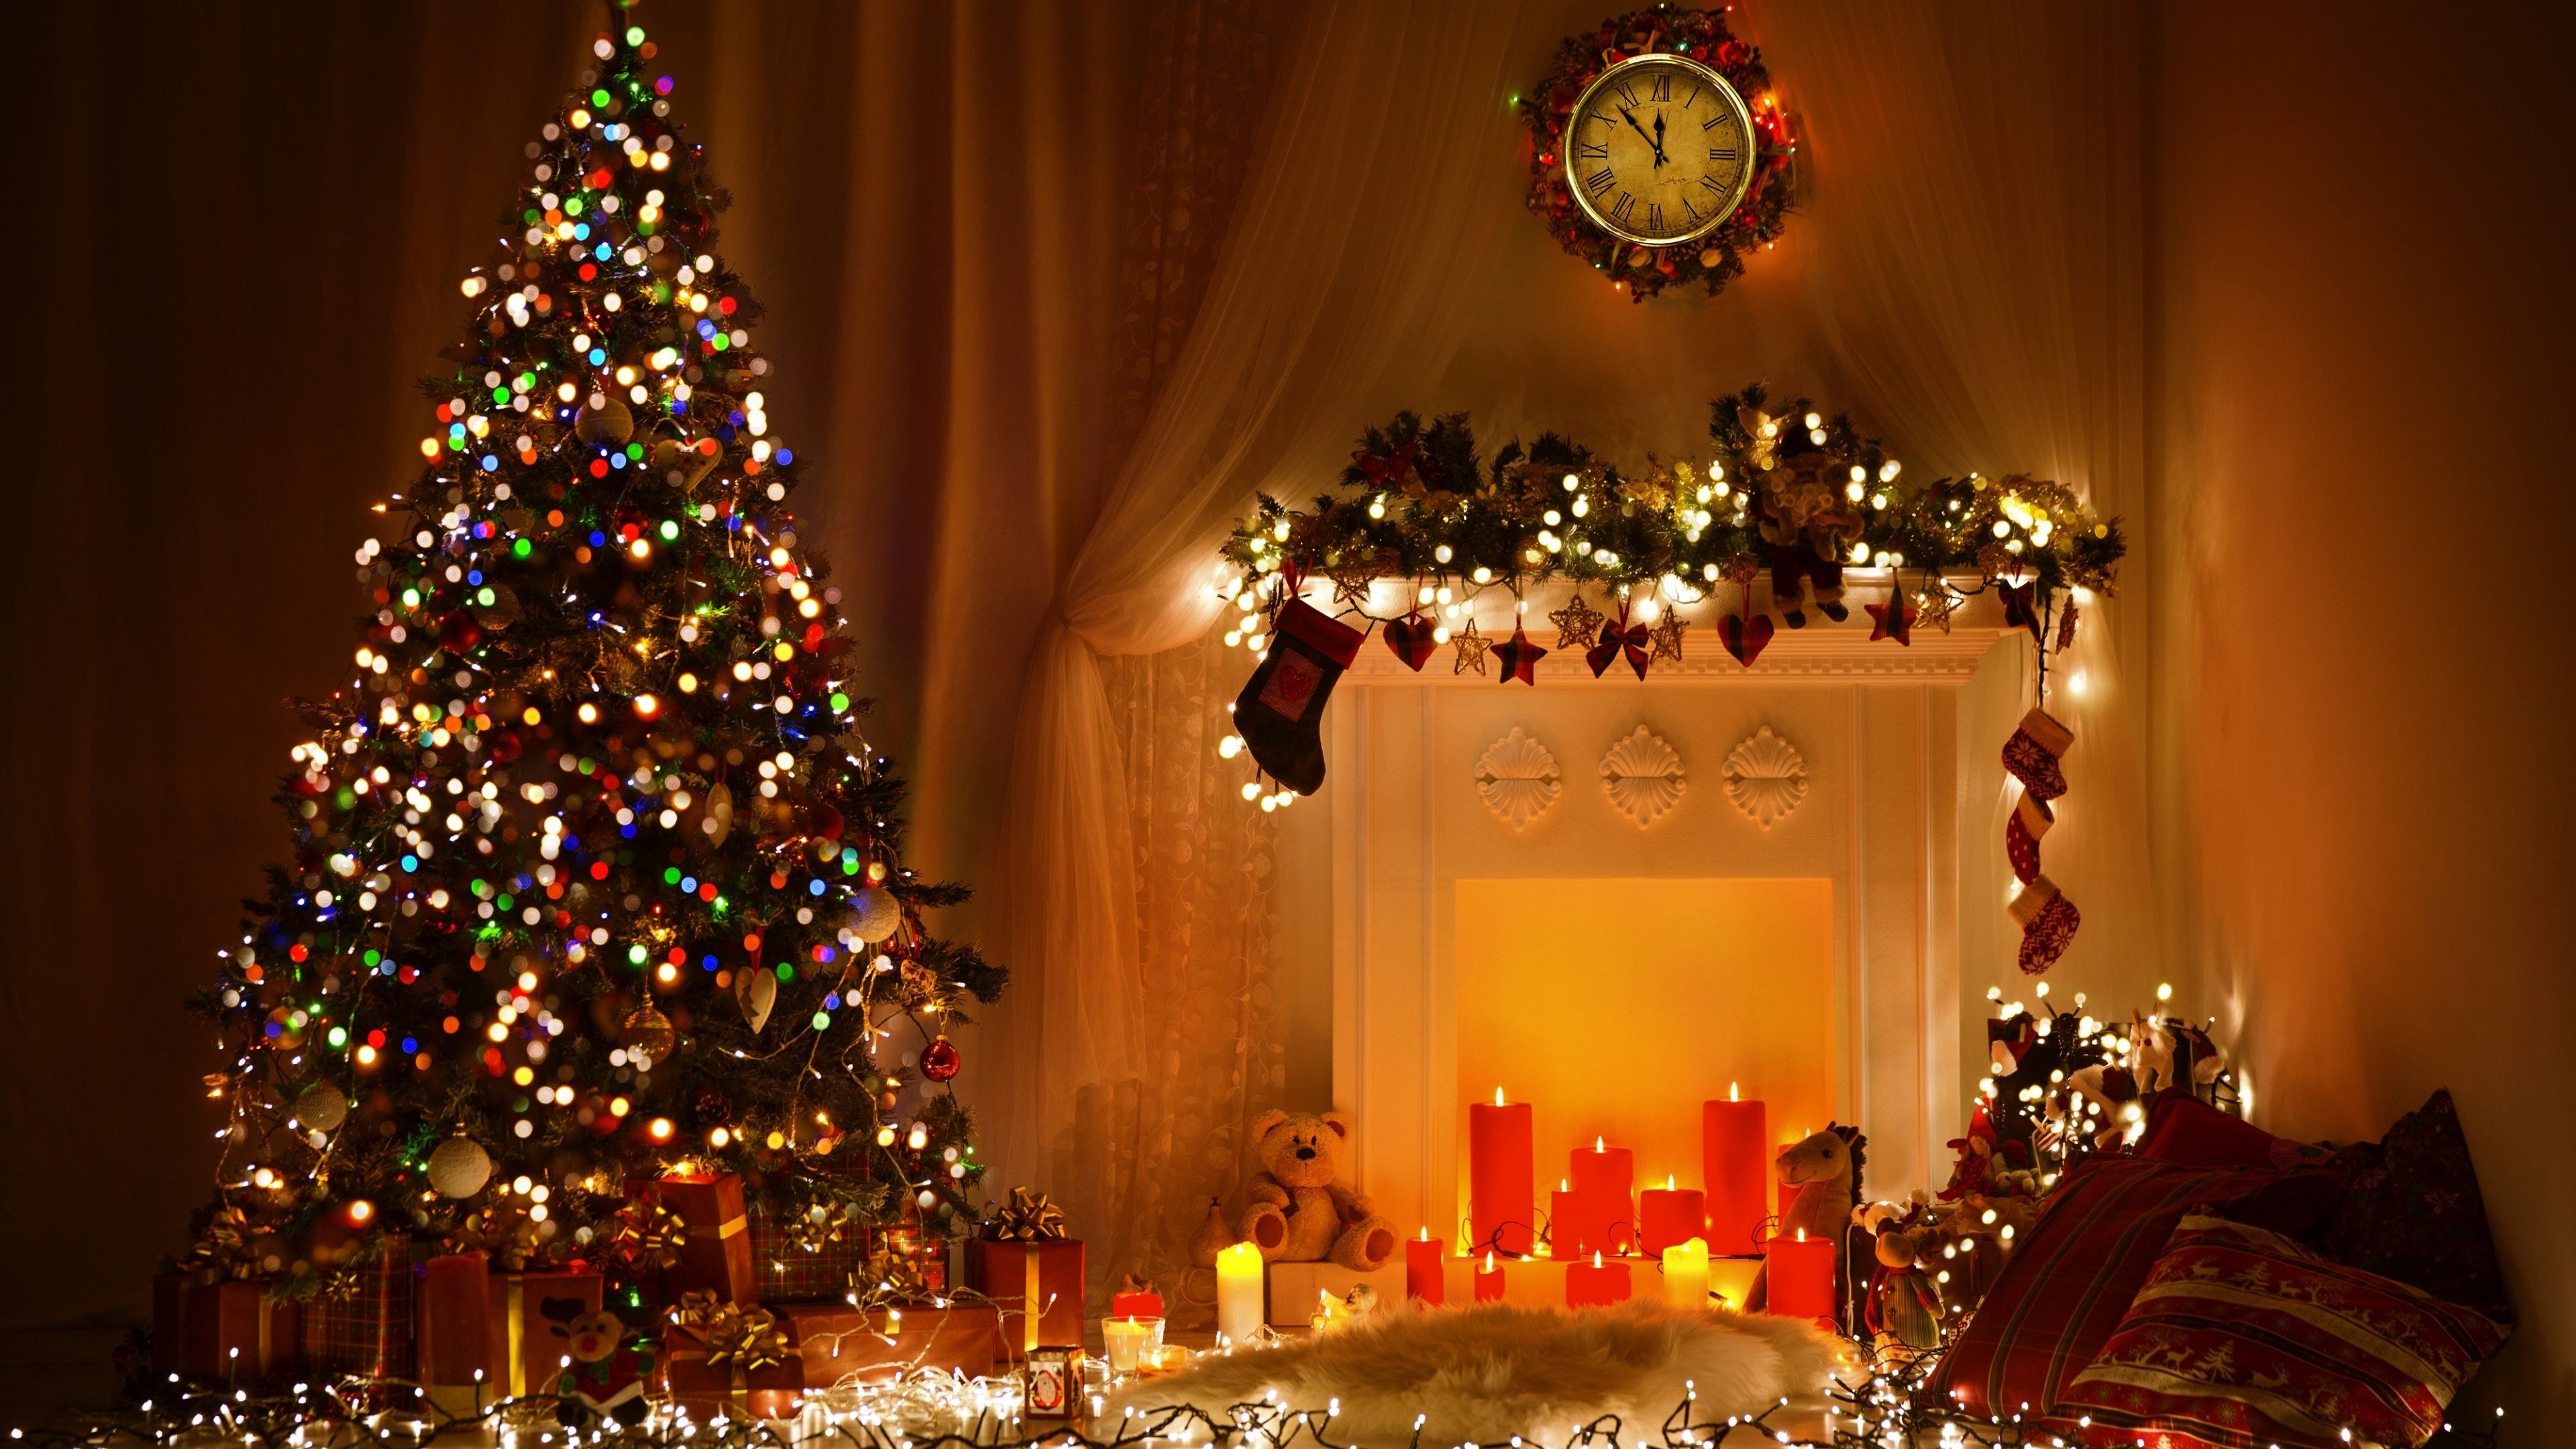 3840 X 2160 Christmas Wallpapers Top Free 3840 X 2160 Christmas Backgrounds Wallpaperaccess